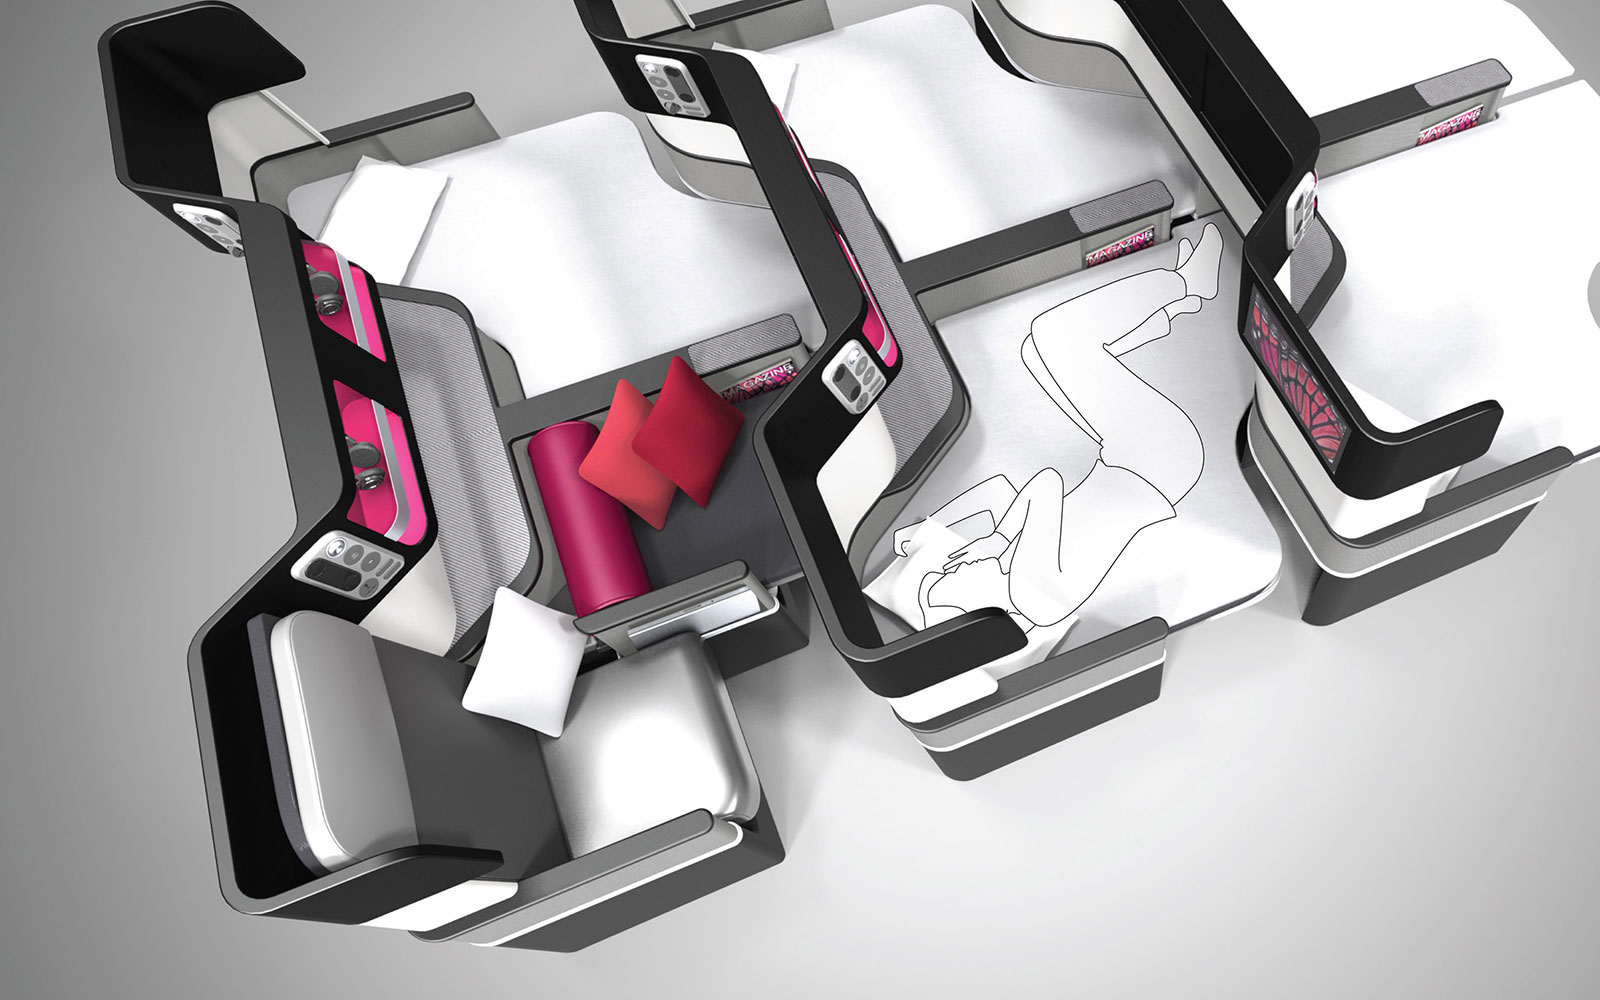 15 Craziest Airplane Cabins of the Future: Butterfly Seat Concept – by paperclipdesign